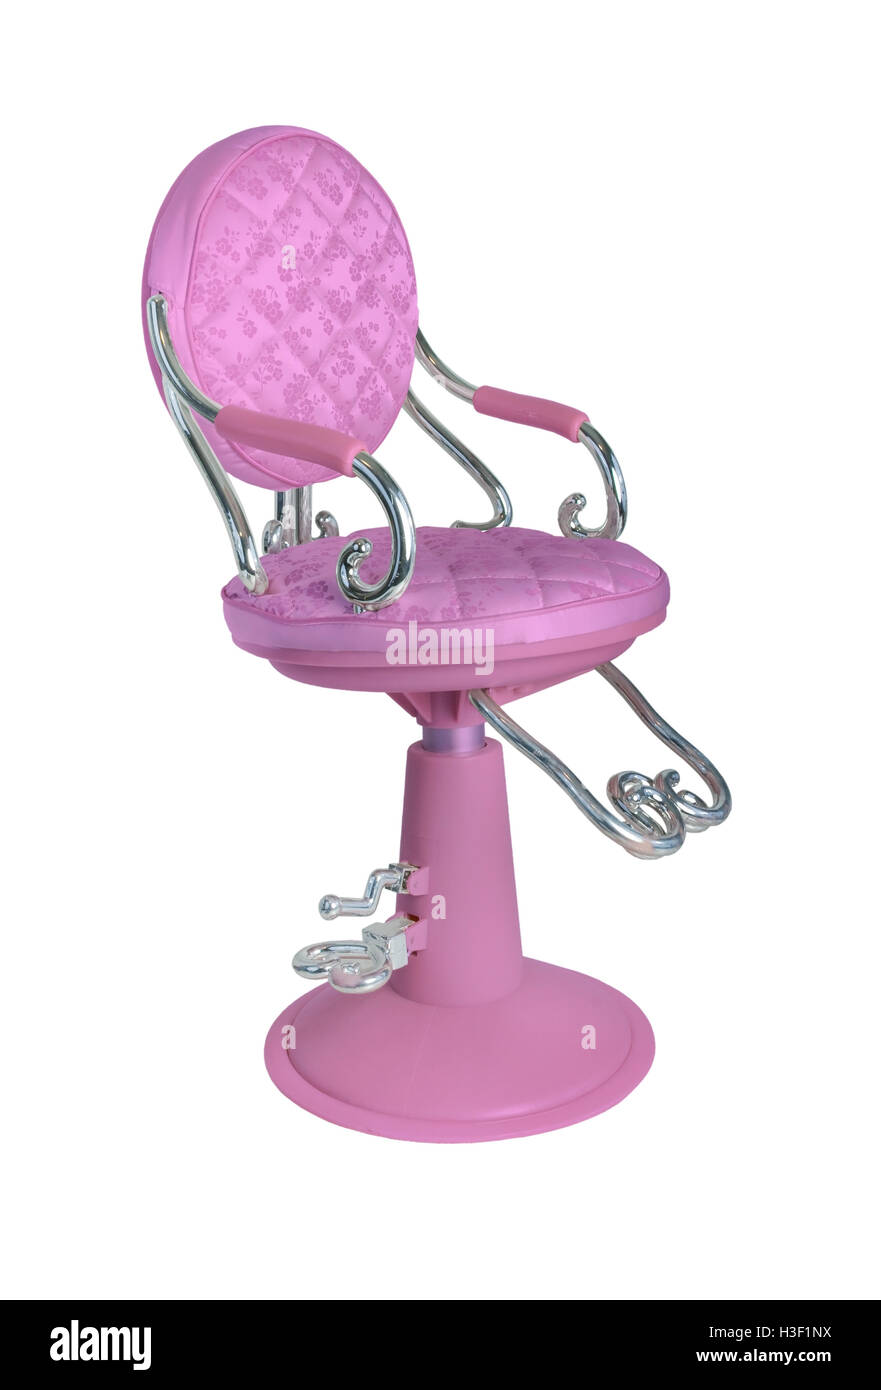 Vintage hair dresser chair used to position patrons when doing their hair - path included - Stock Image